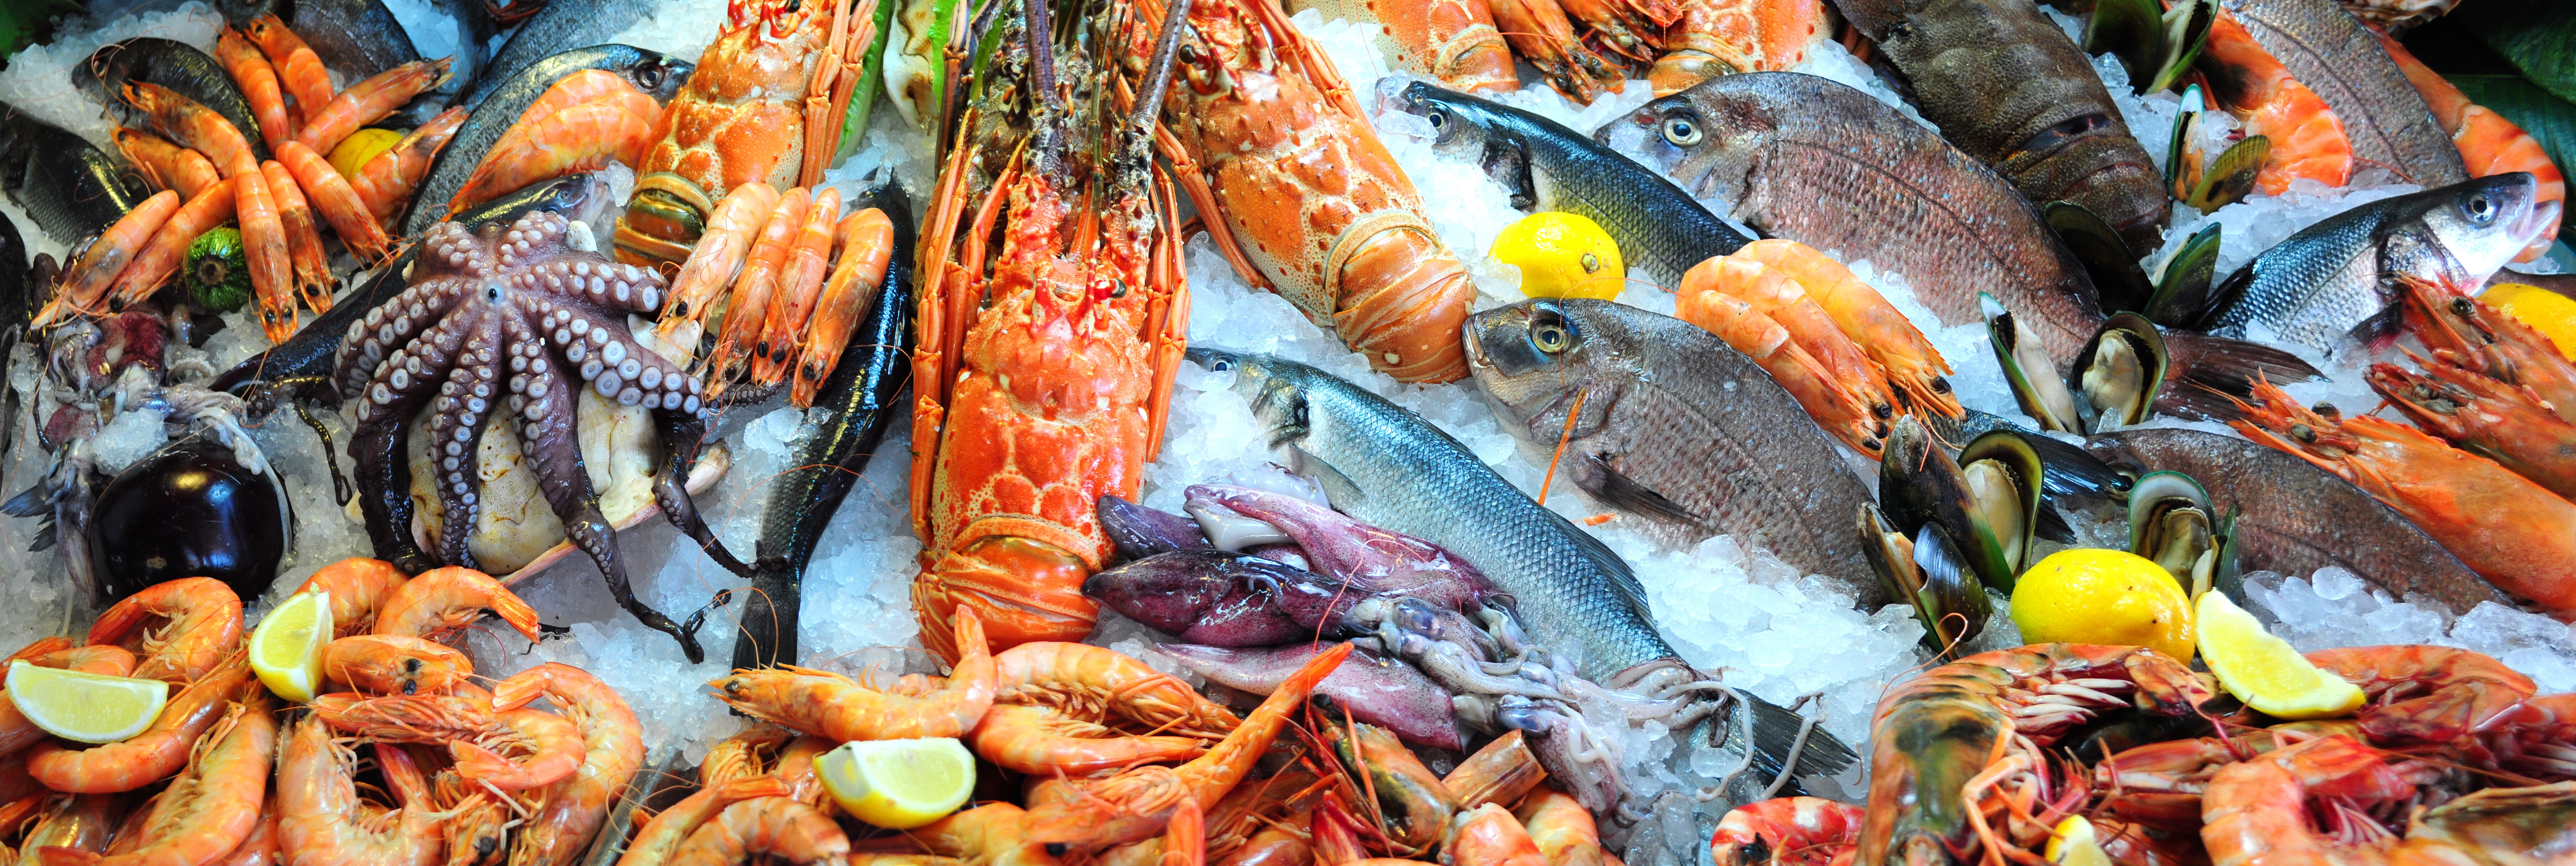 Ensure Traceability In Your Seafood Supply Chain With Tech